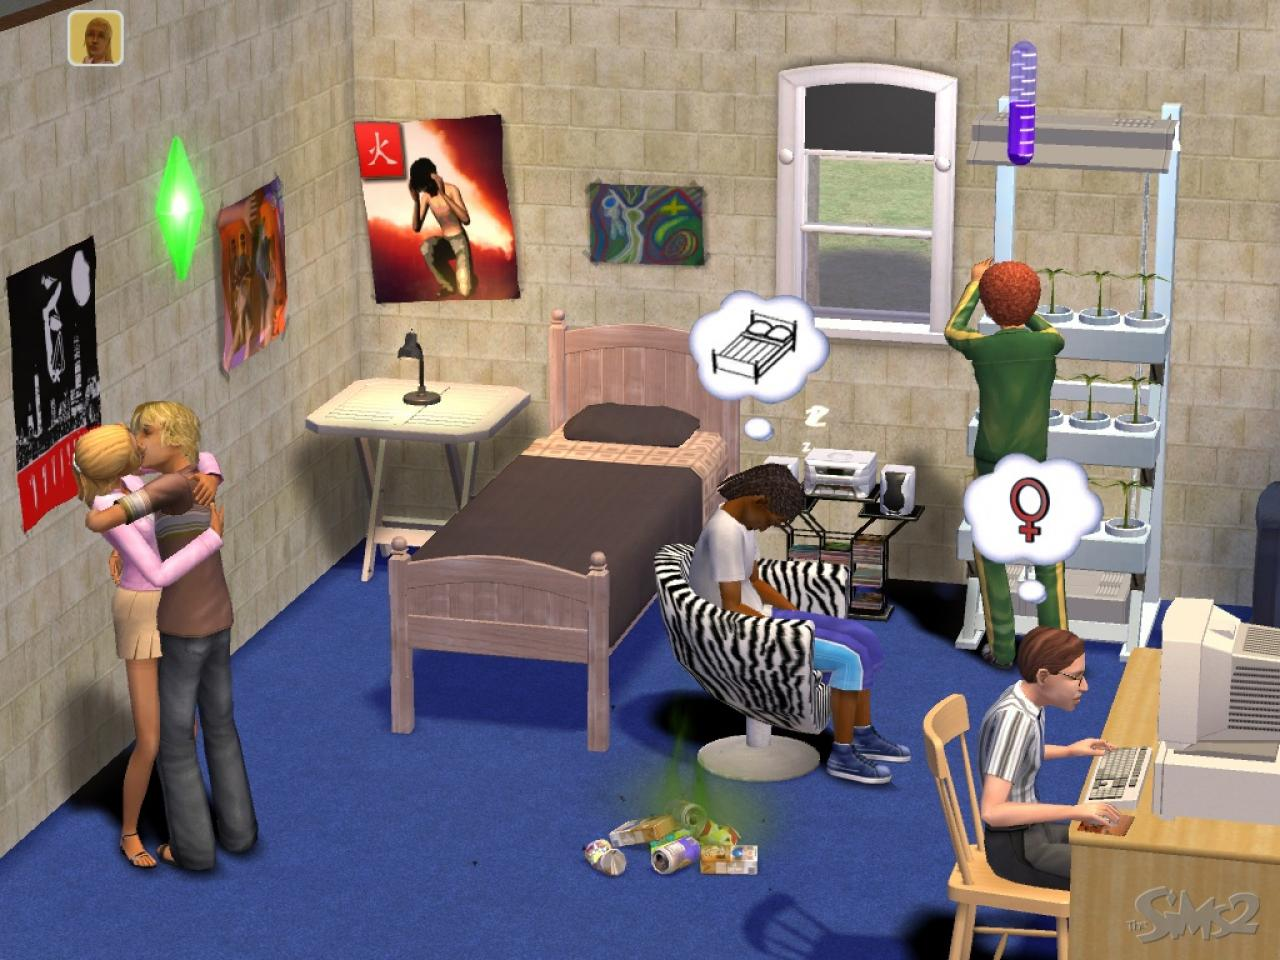 Free sims 2 sex objects smut clip